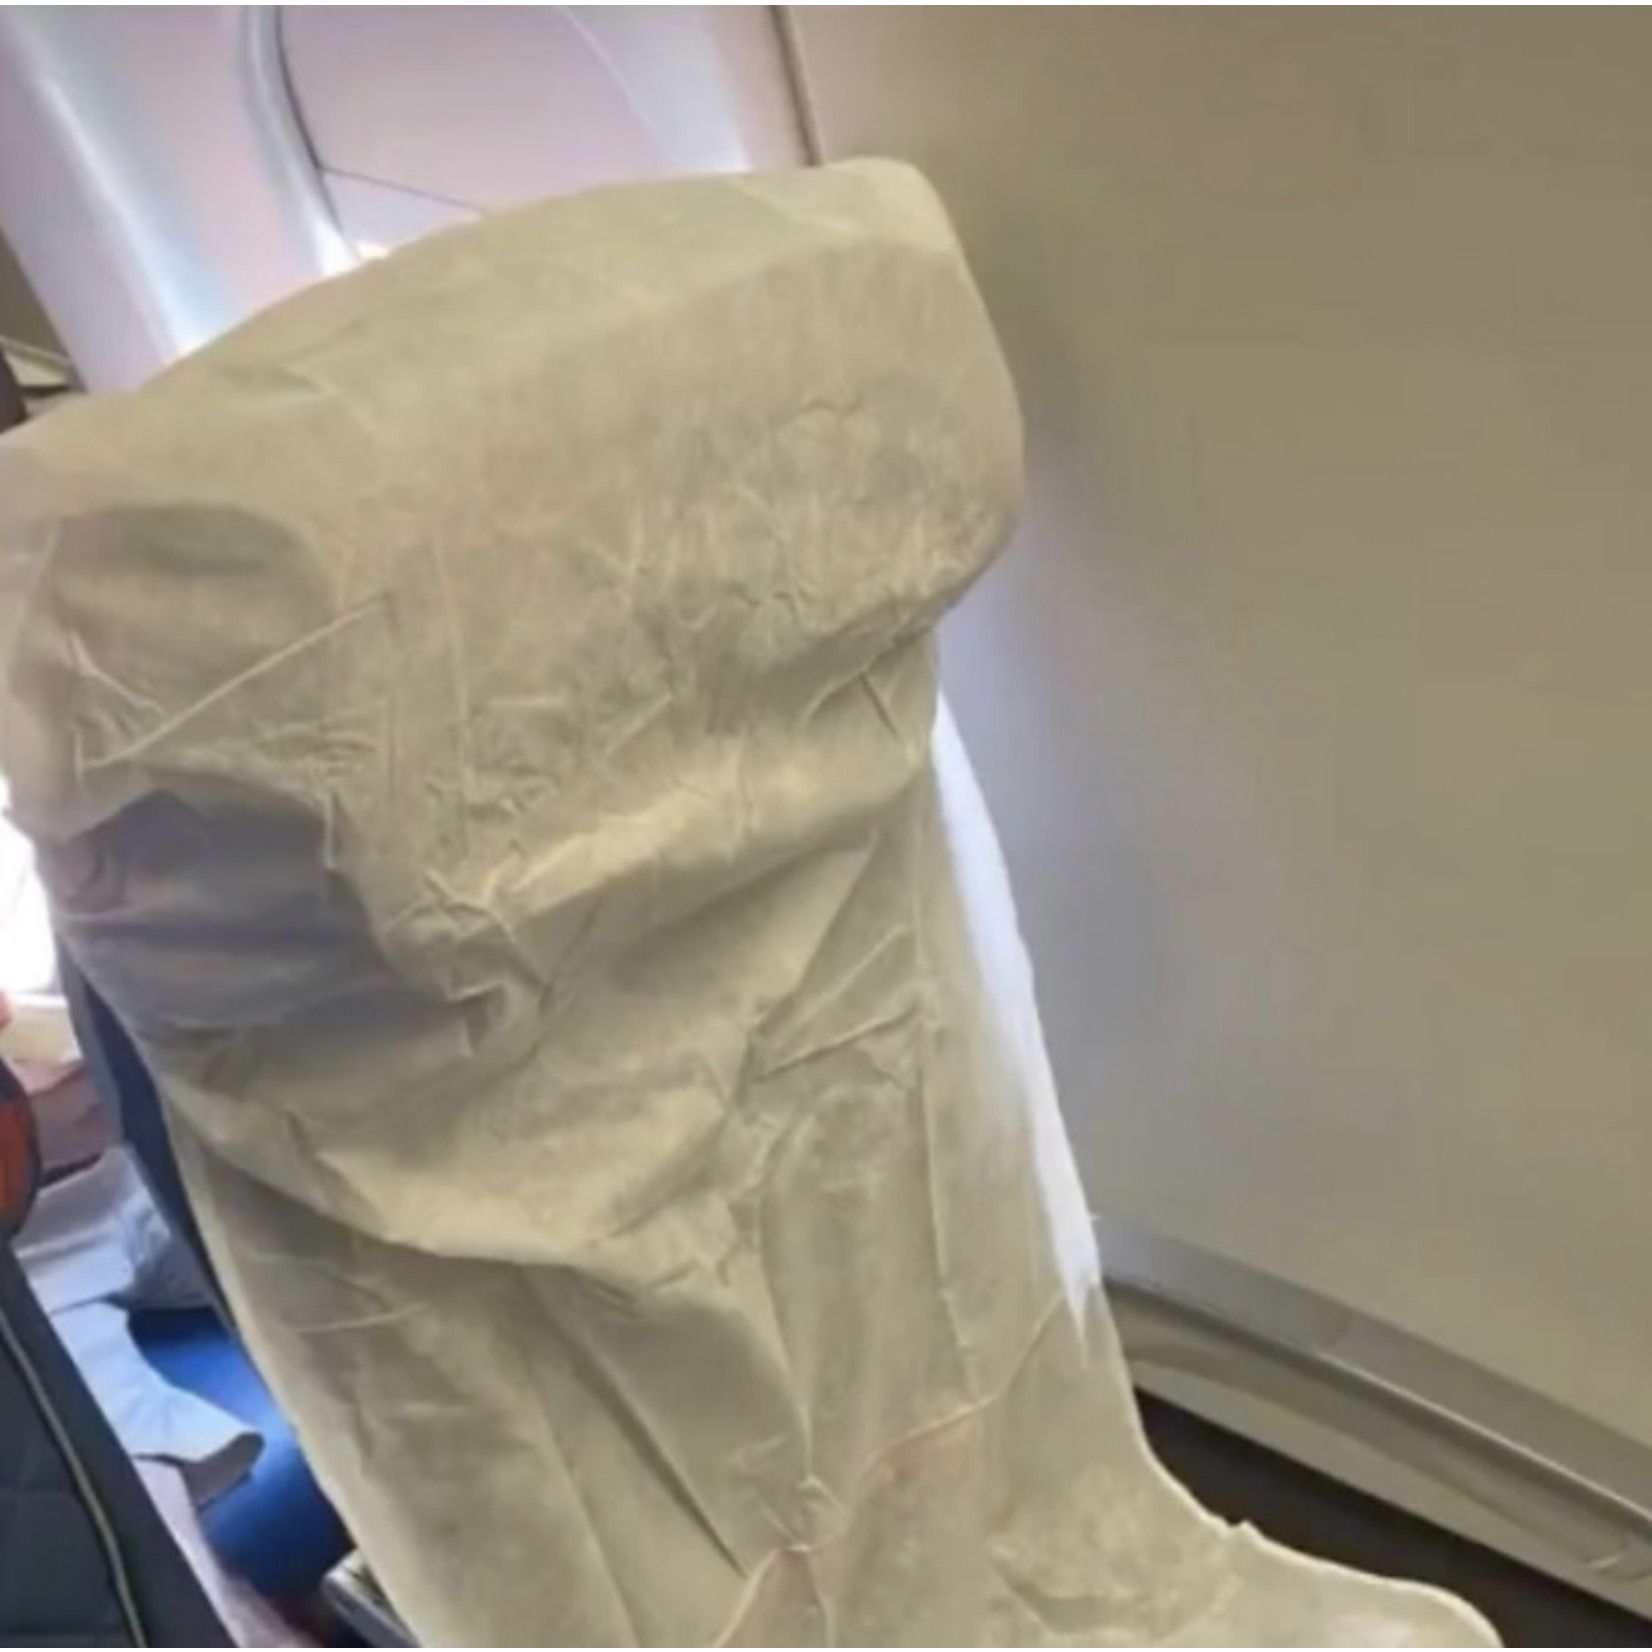 Disposable Airplane Seat Covers (2ct)